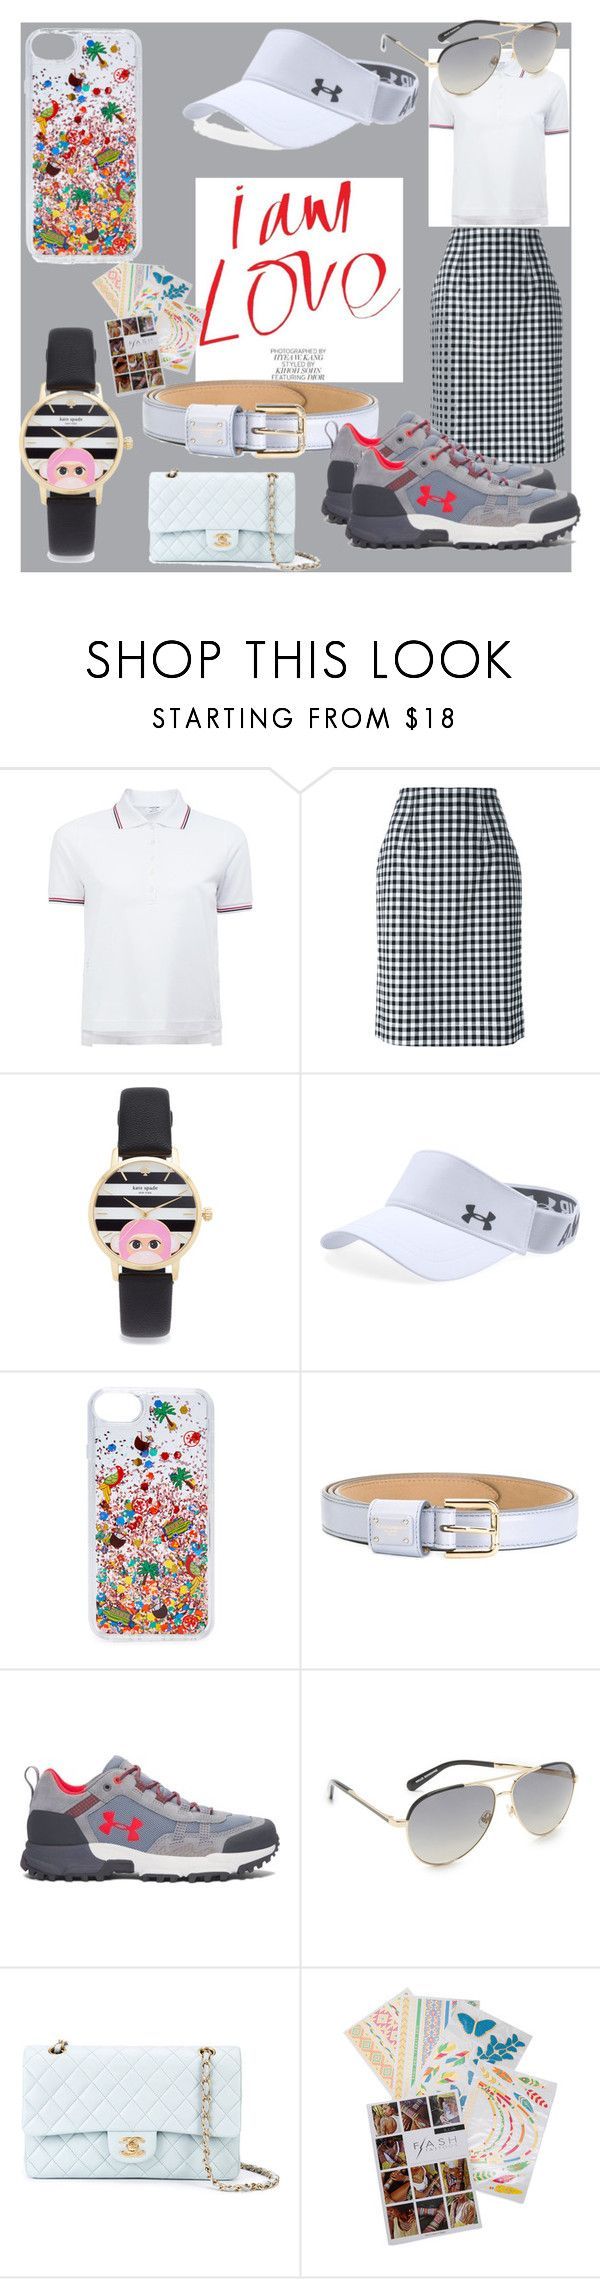 """""""set sale offer"""" by denisee-denisee ❤ liked on Polyvore featuring Thom Browne, Blumarine, Kate Spade, Under Armour, Tory Burch, Dolce&Gabbana, Chanel, Flash Tattoos and vintage"""